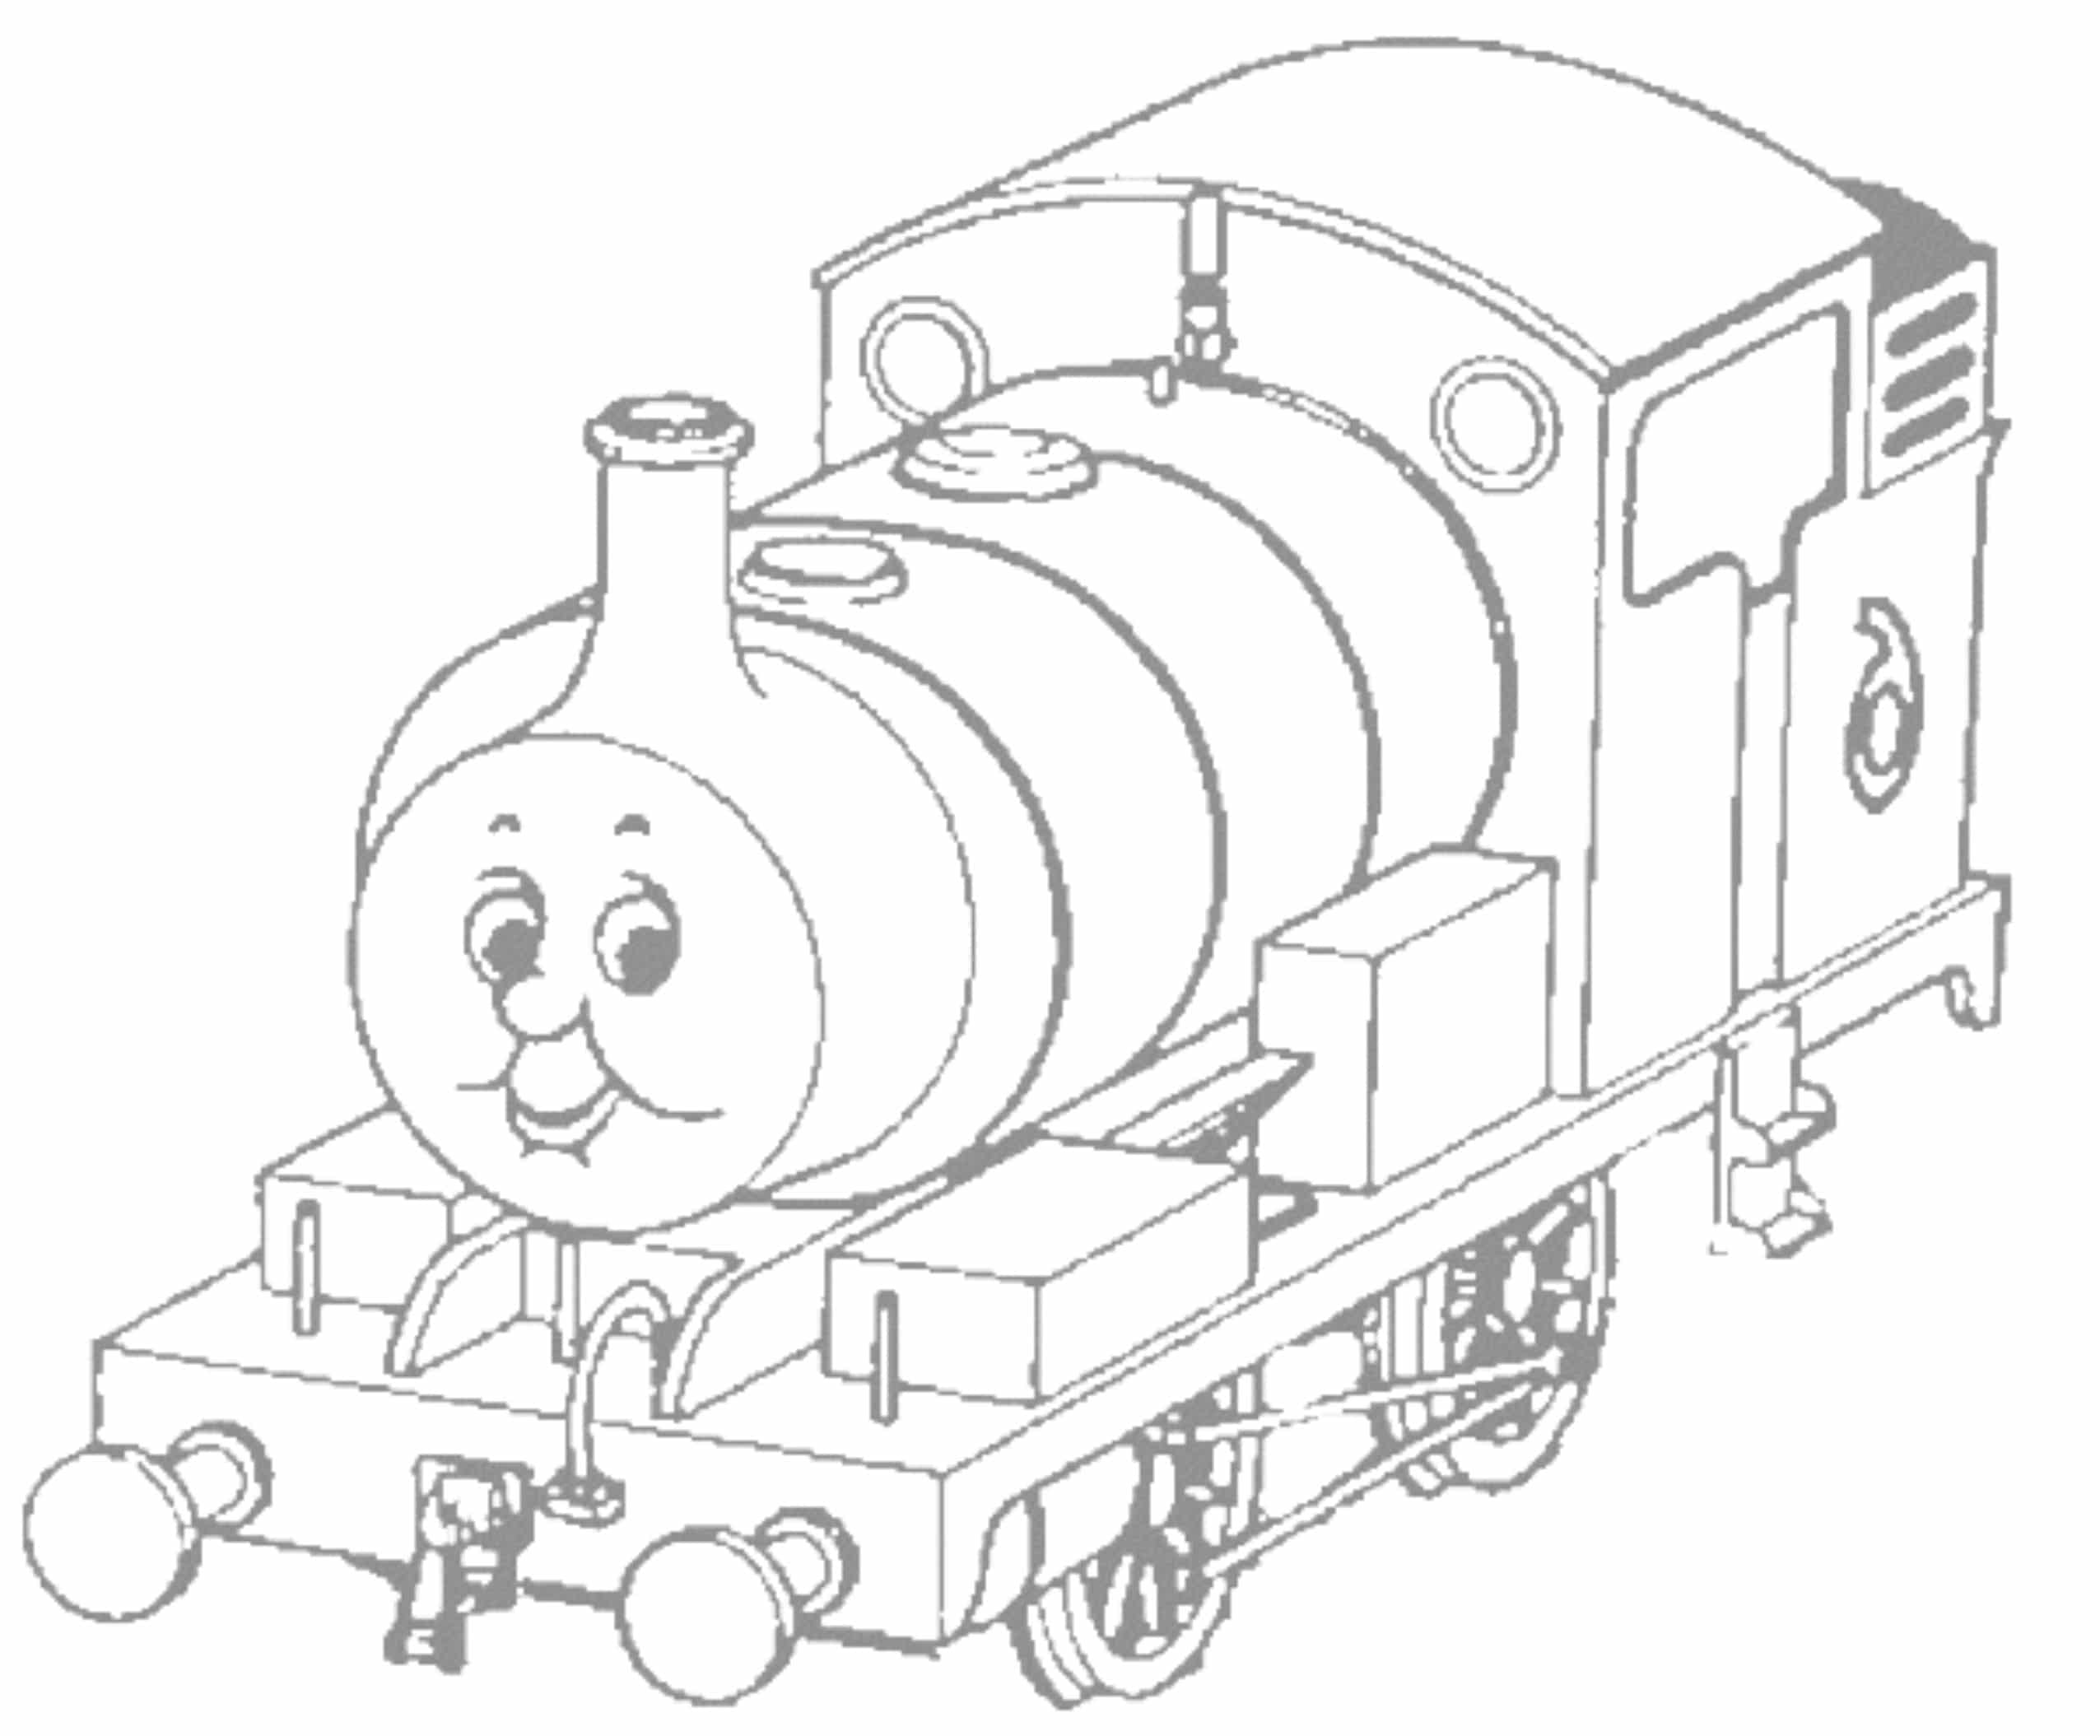 thomas the train drawing thomas coloring pages for teenagers printable worksheets the drawing train thomas